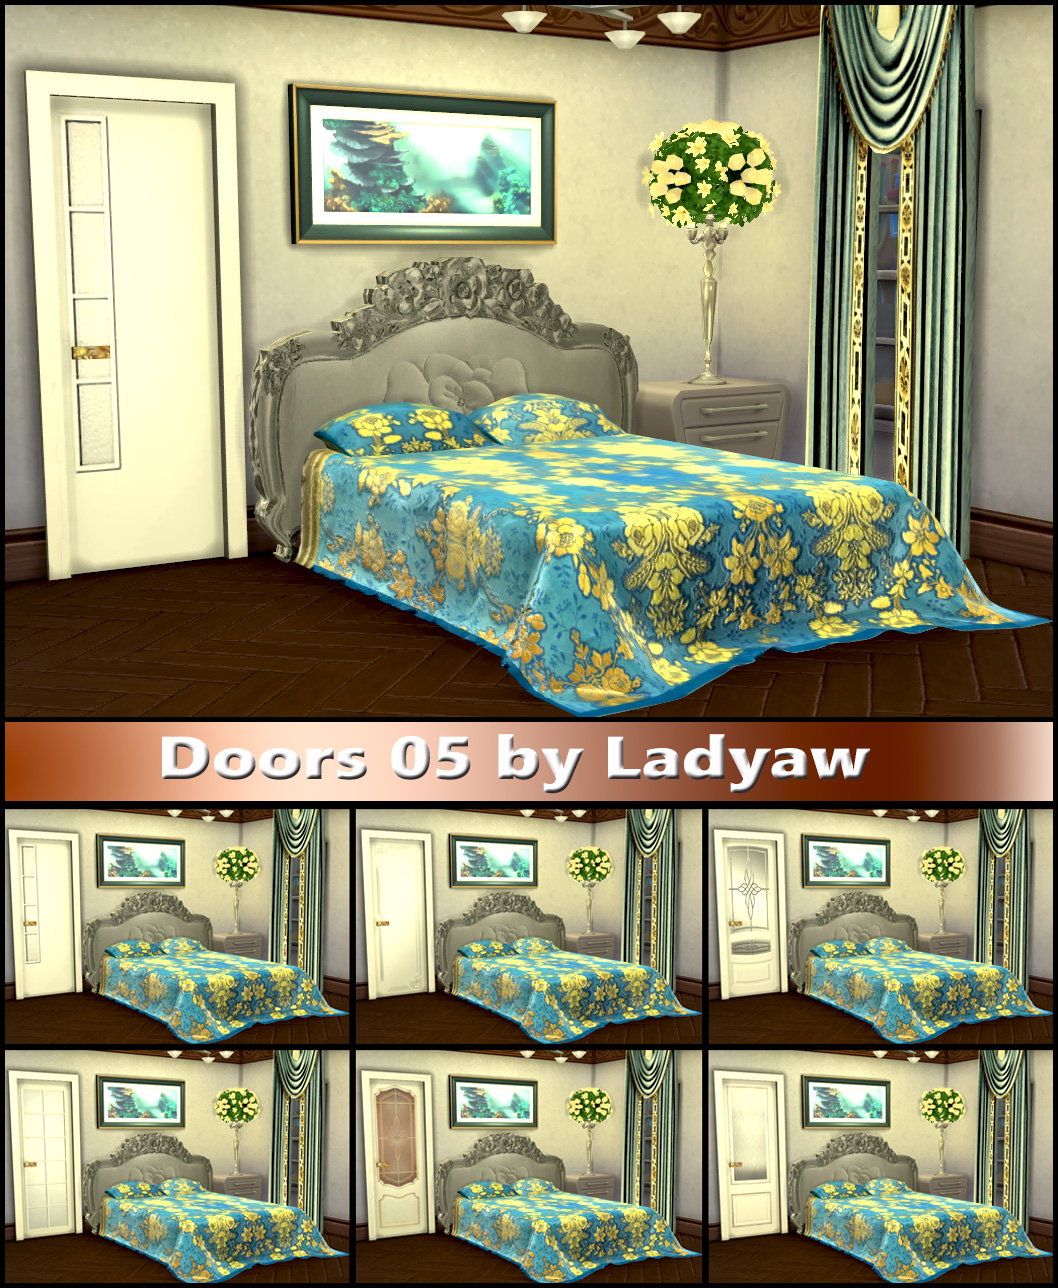 Doors 05 by Ladyaw